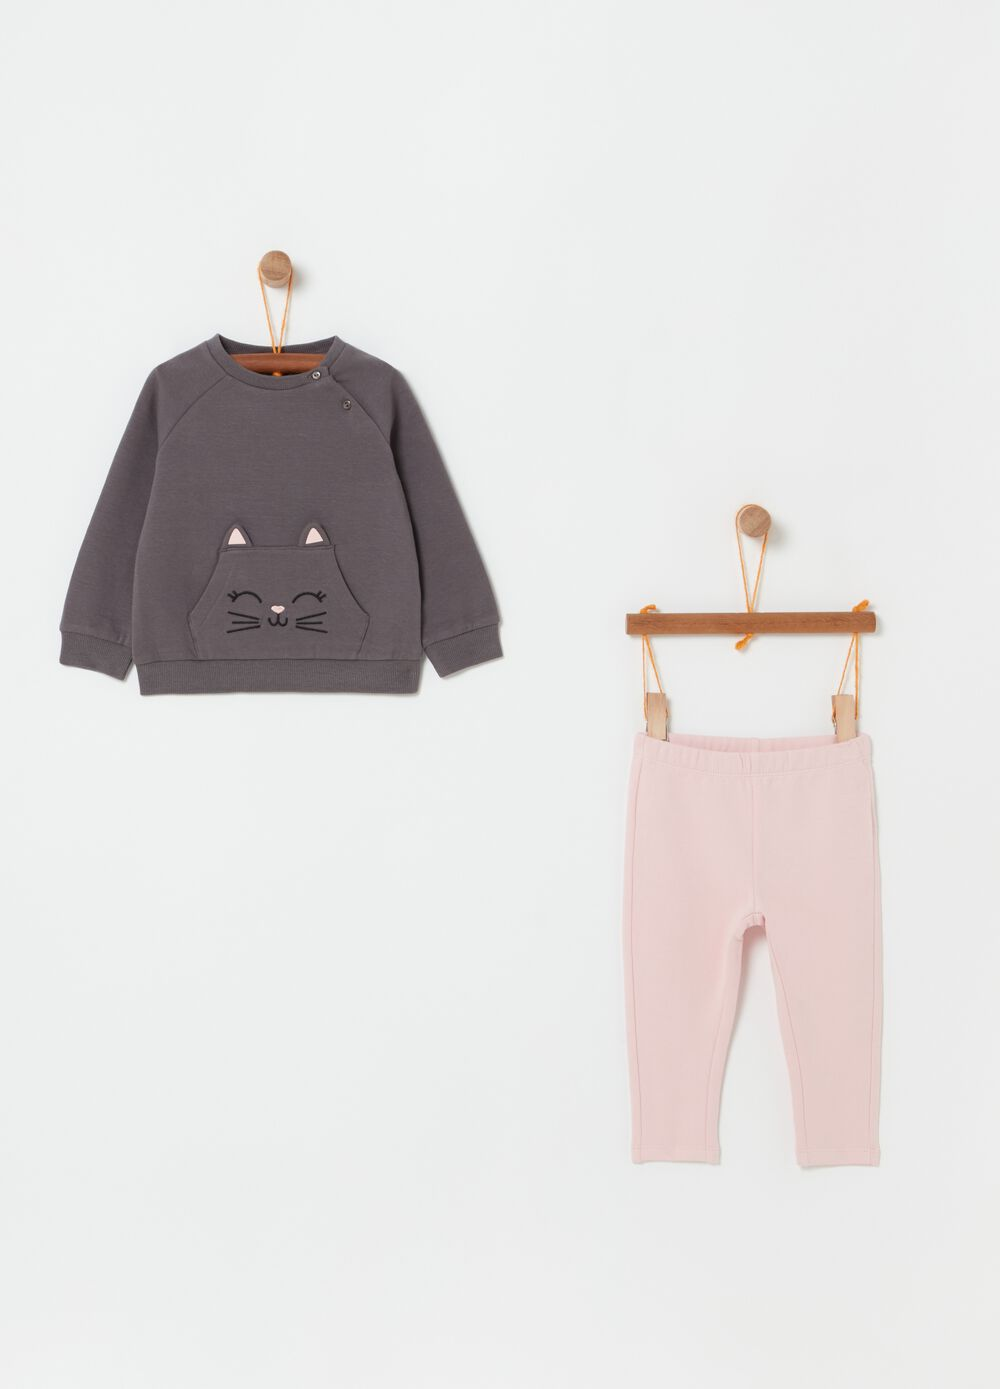 Jogging set with sweatshirt and trousers with kitten